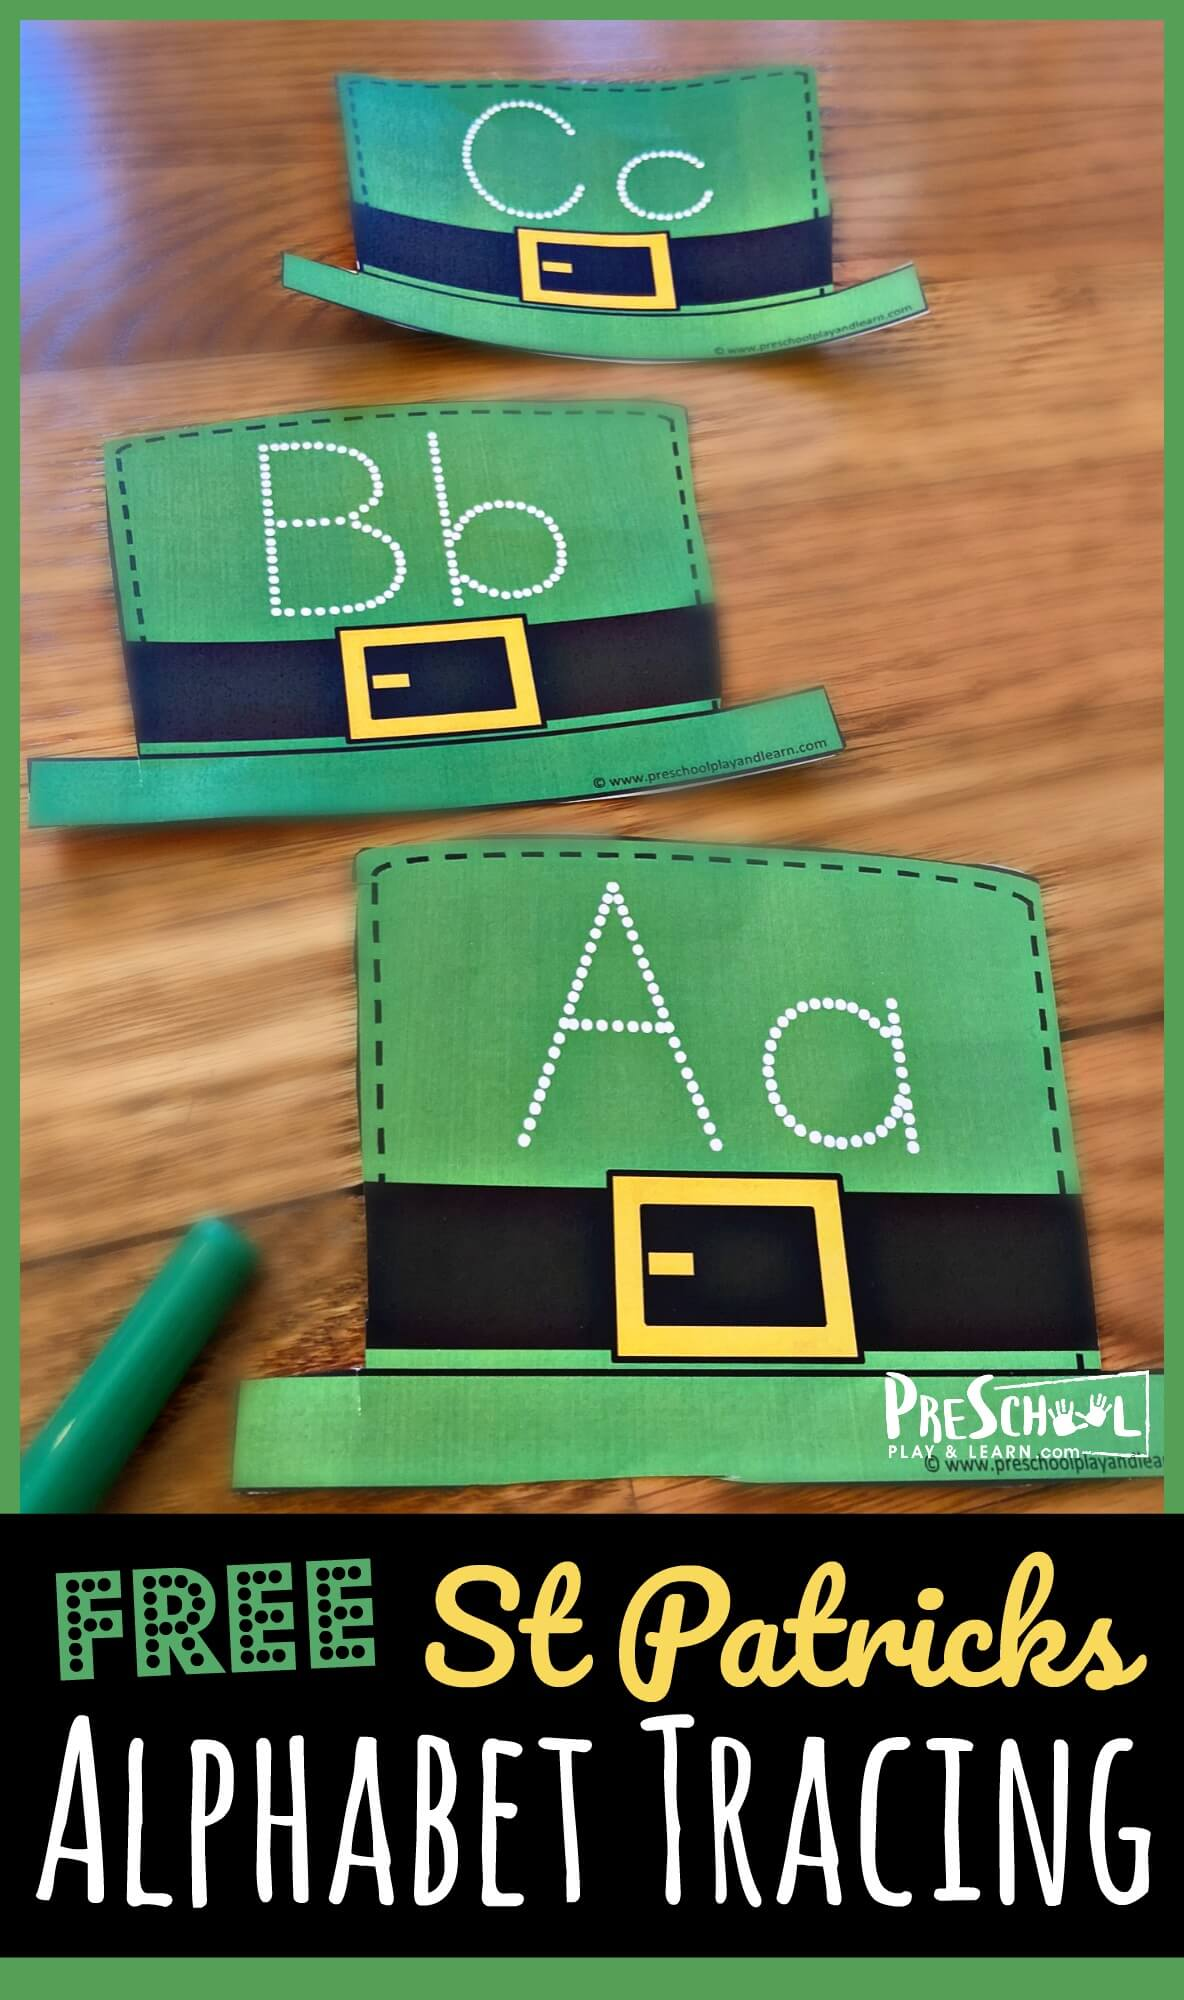 FREE St Patrick's Alphabet Tracing - Have fun practing tracing alphabet letters with this FREE st patrick's day printables perfect for toddler, preschool and kindergarten age kids to practice in March.